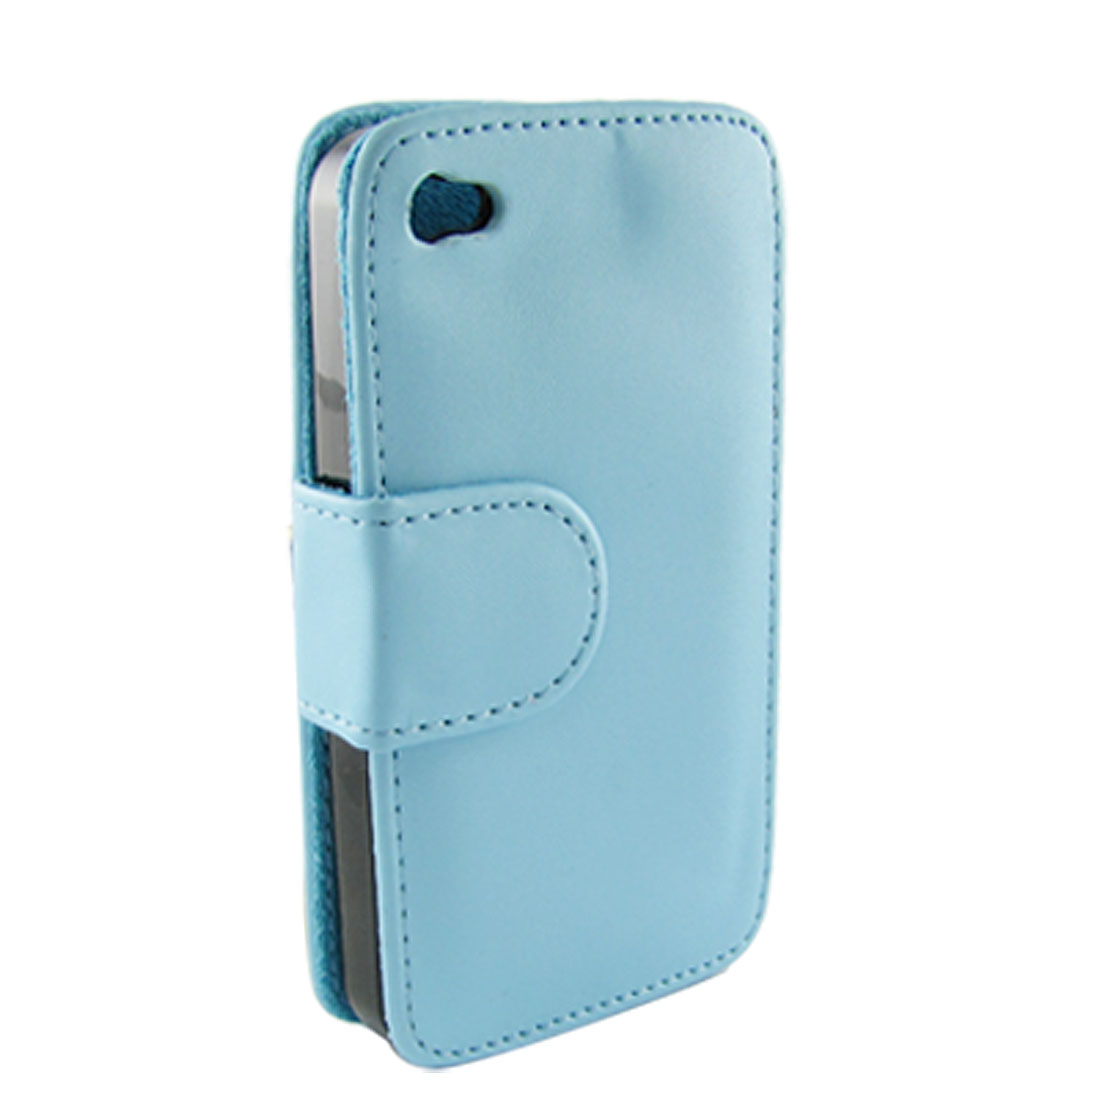 Baby Blue Faux Leather Flip Protective Cover for iPhone 4